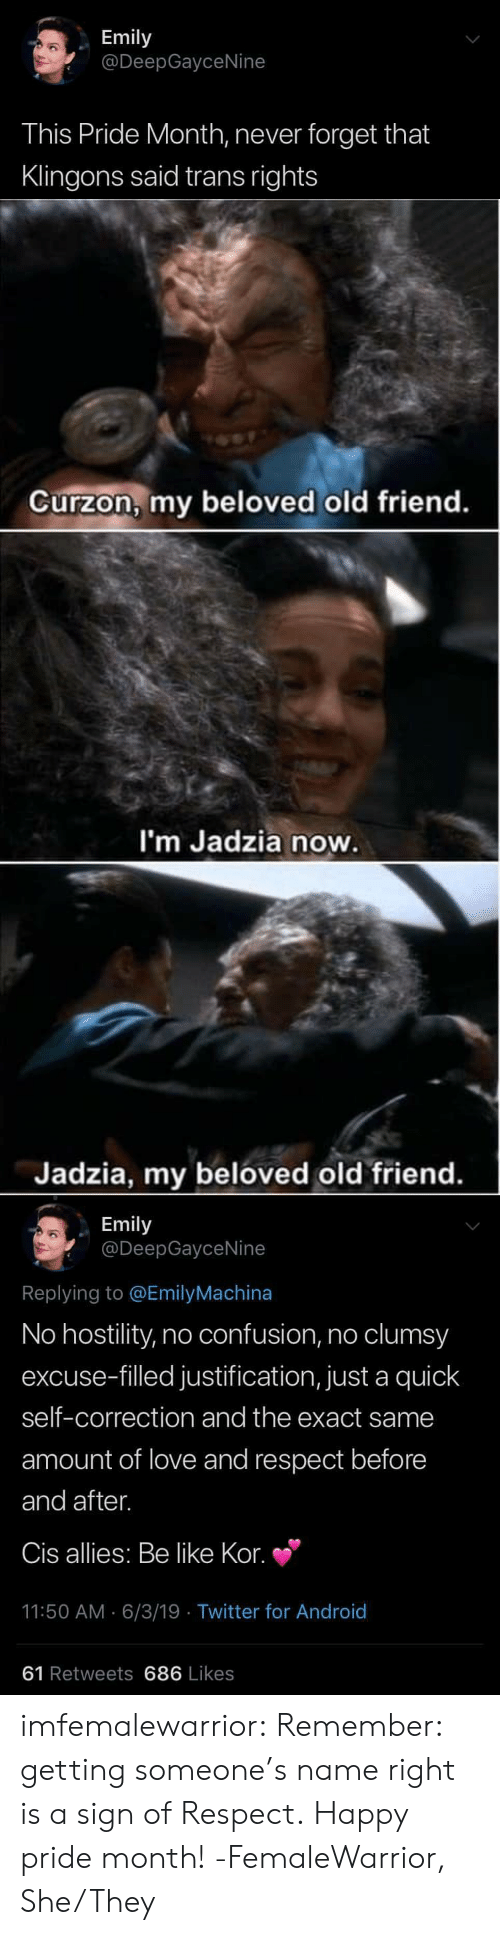 Forget That: Emily  @DeepGayceNine  This Pride Month, never forget that  Klingons said trans rights   Curzon, my beloved old friend.  I'm Jadzia now.  Jadzia, my beloved old friend.   Emily  @DeepGayceNine  Replying to @EmilyMachina  No hostility, no confusion, no clumsy  excuse-filled justification, just a quick  self-correction and the exact same  amount of love and respect before  and after.  Cis allies: Be like Kor.  11:50 AM 6/3/19 Twitter for And roid  61 Retweets 686 Likes imfemalewarrior:  Remember: getting someone's name right is a sign of Respect. Happy pride month! -FemaleWarrior, She/They